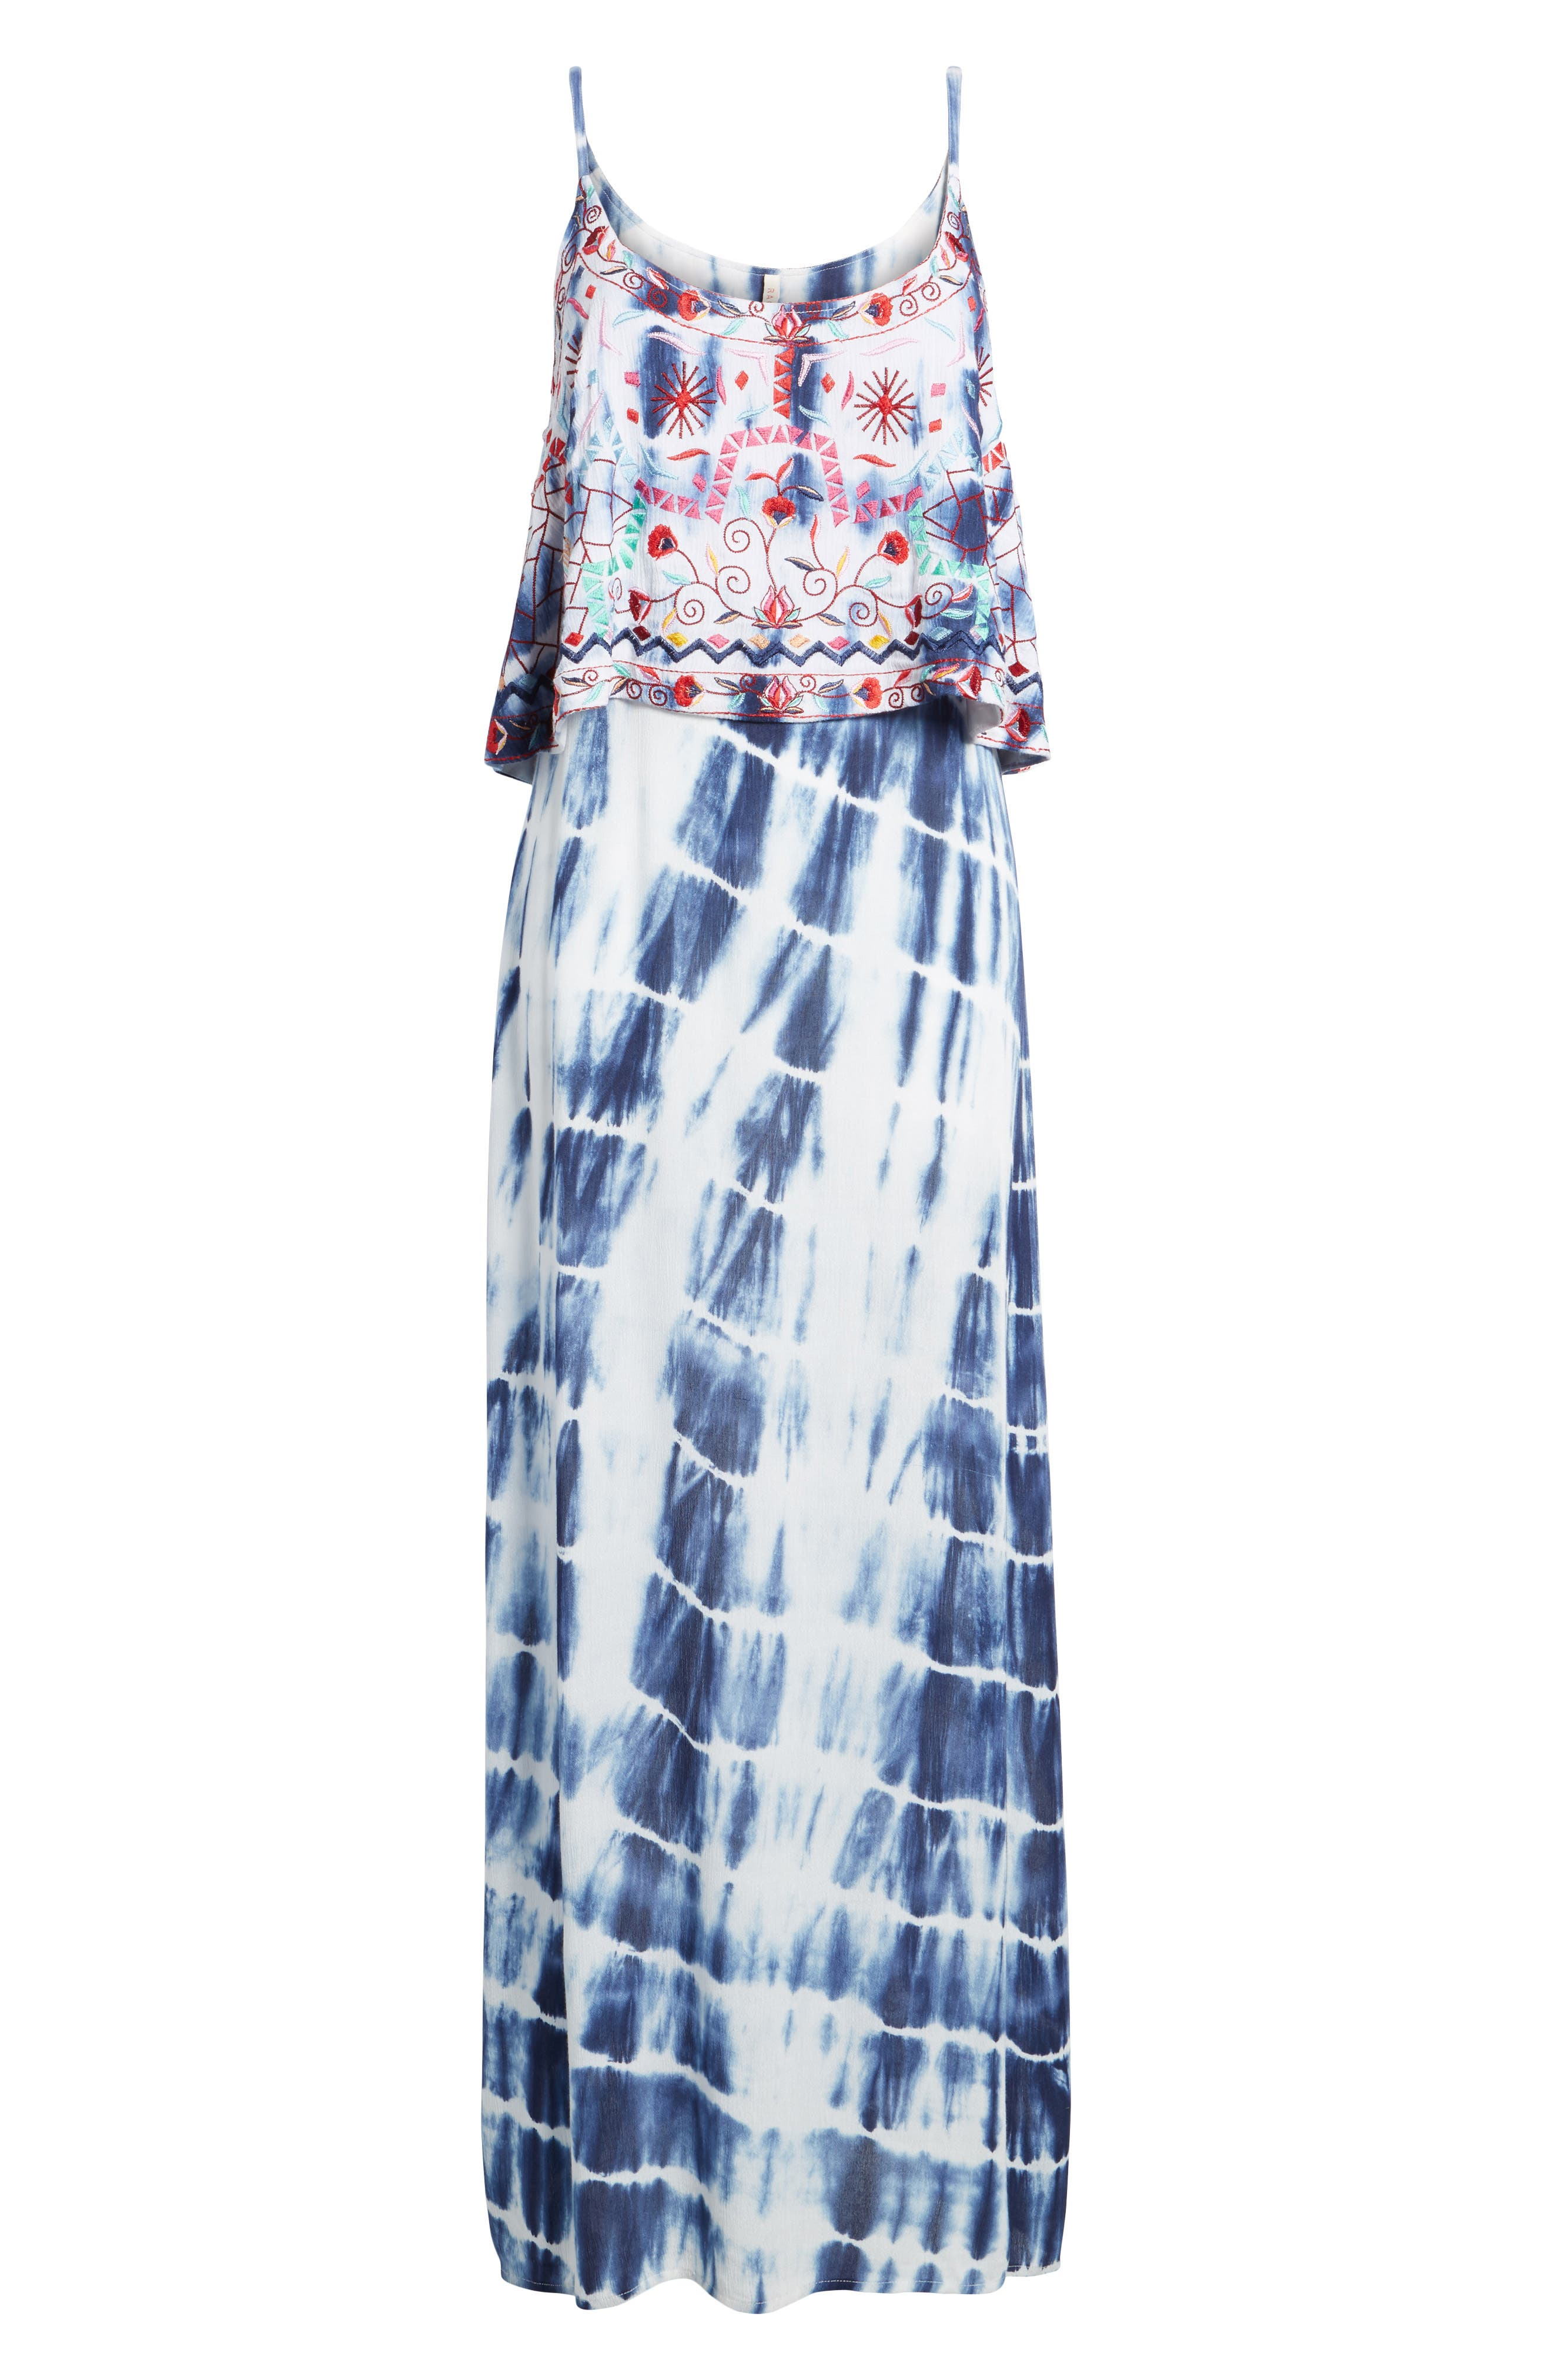 Catching The Waves Embroidered Maxi Dress,                             Alternate thumbnail 6, color,